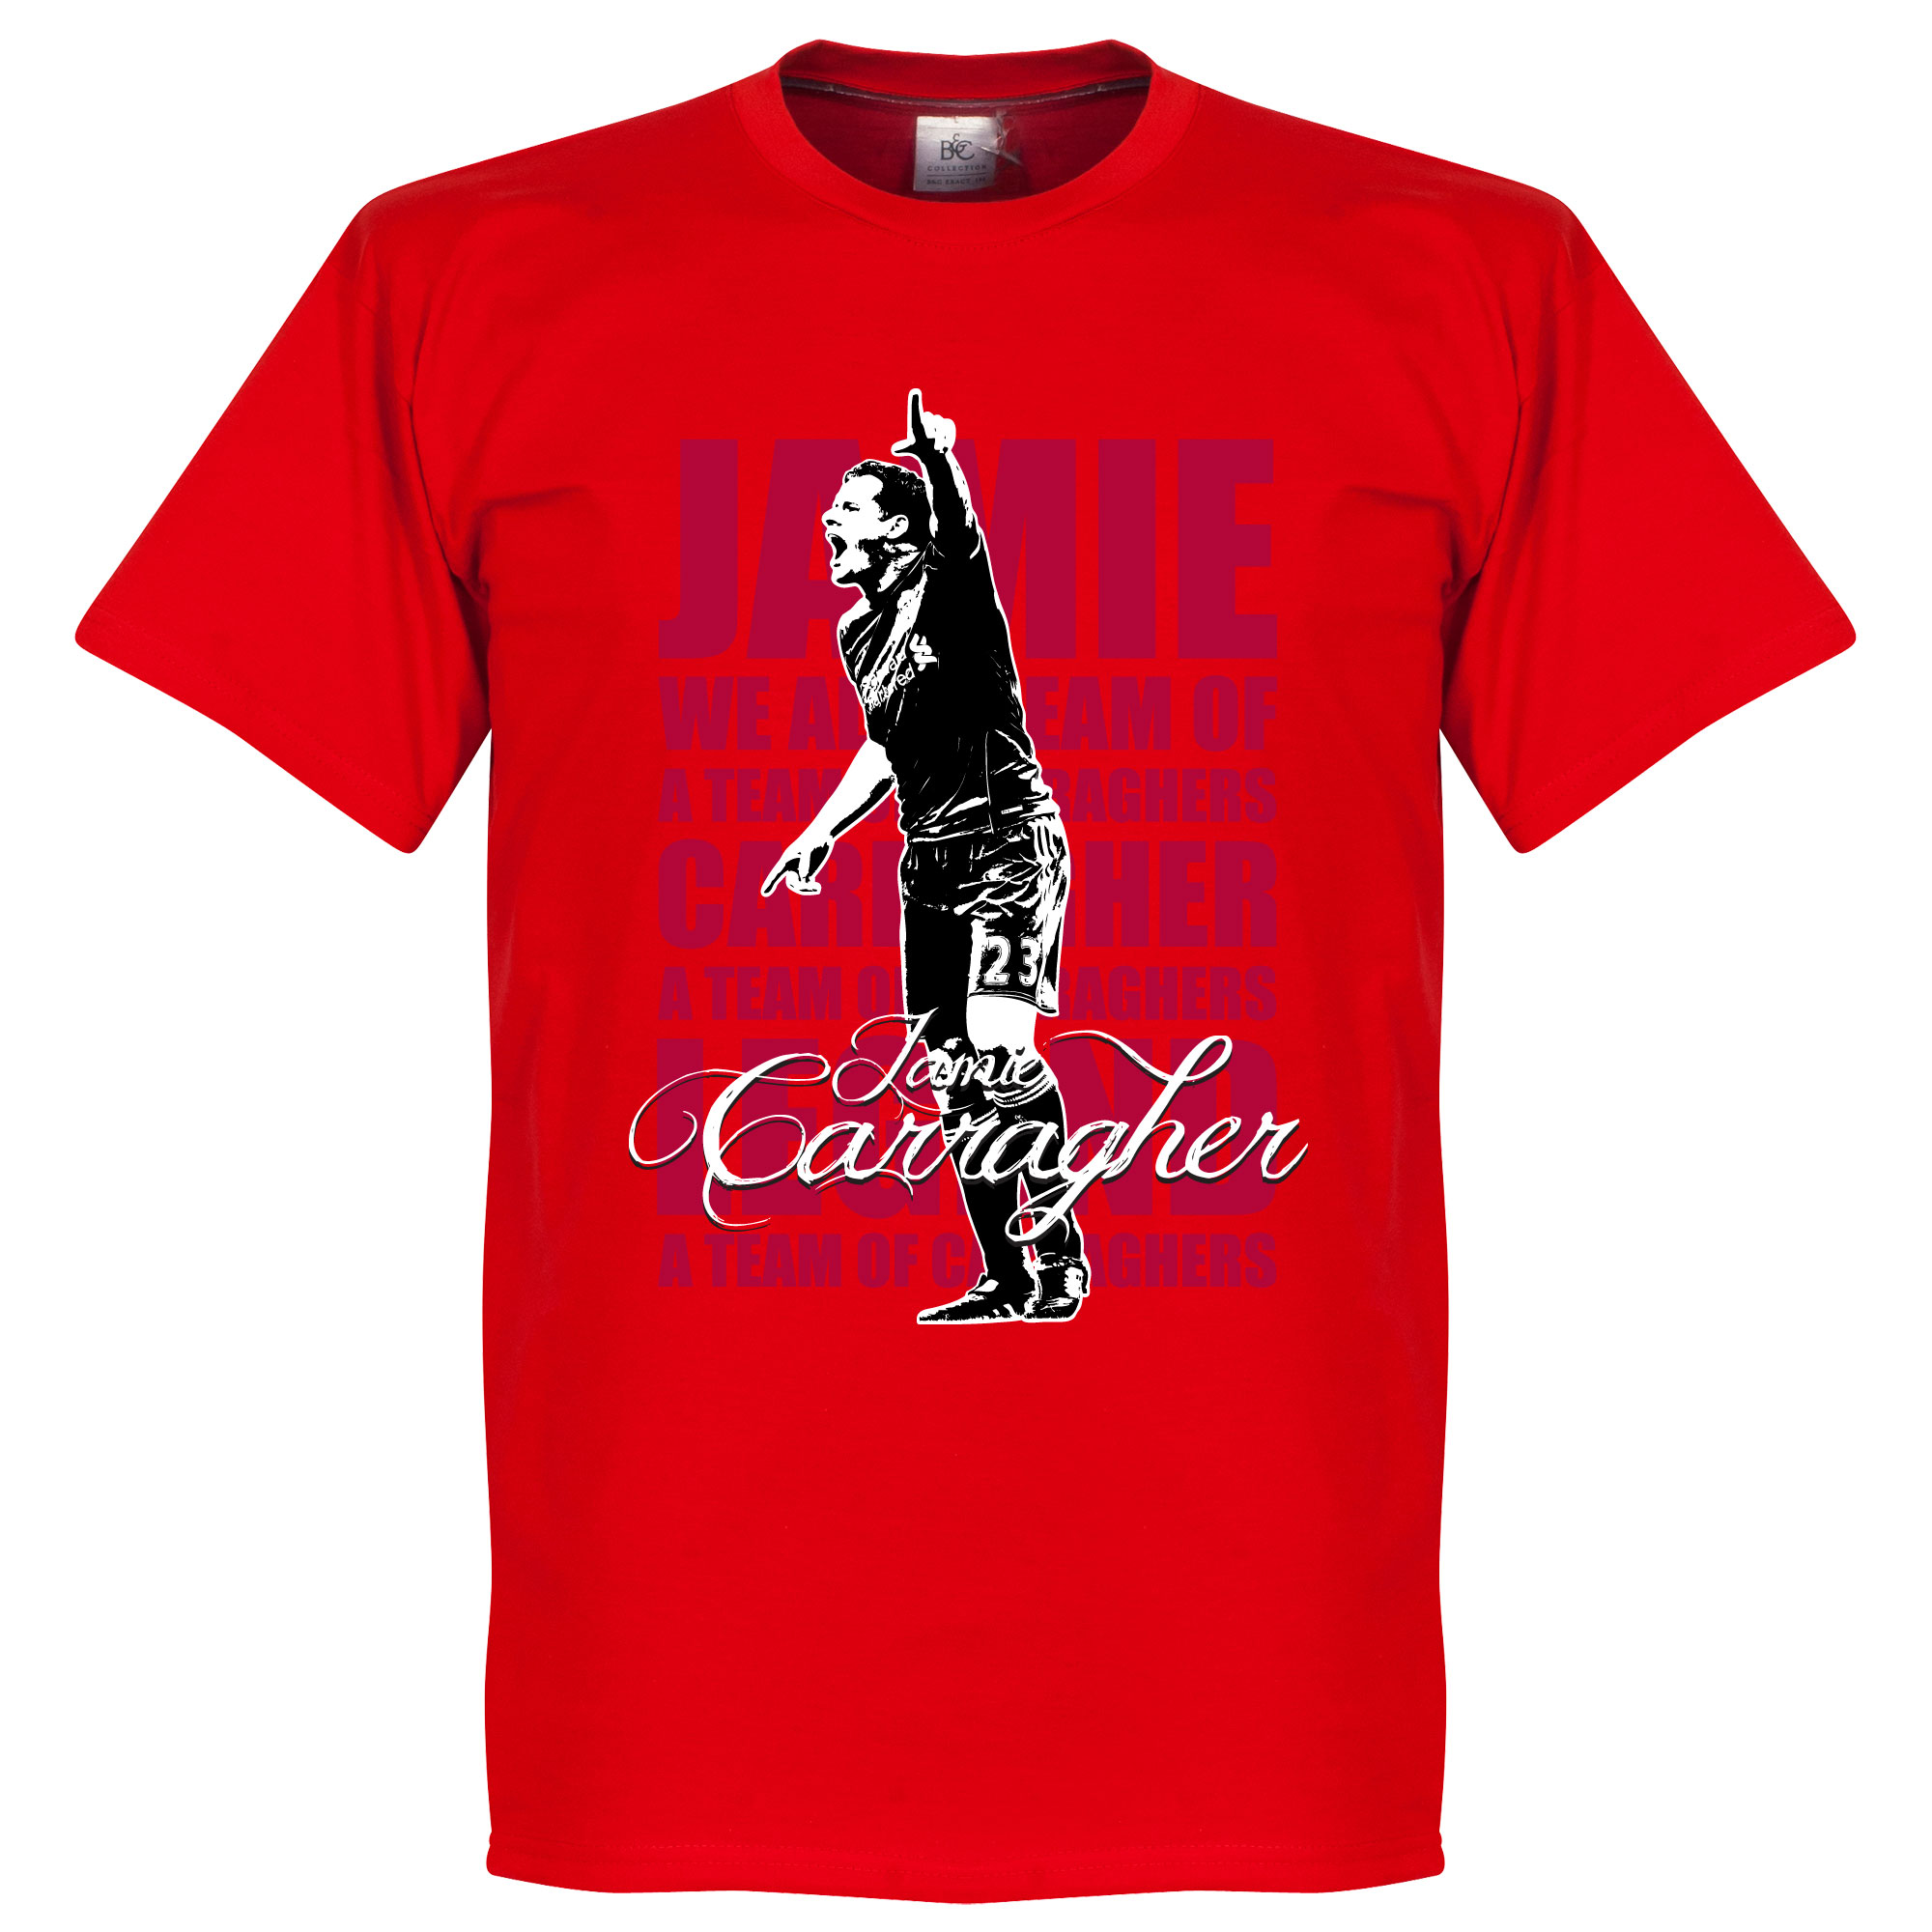 Jamie Carragher Legend Tee - XXXL